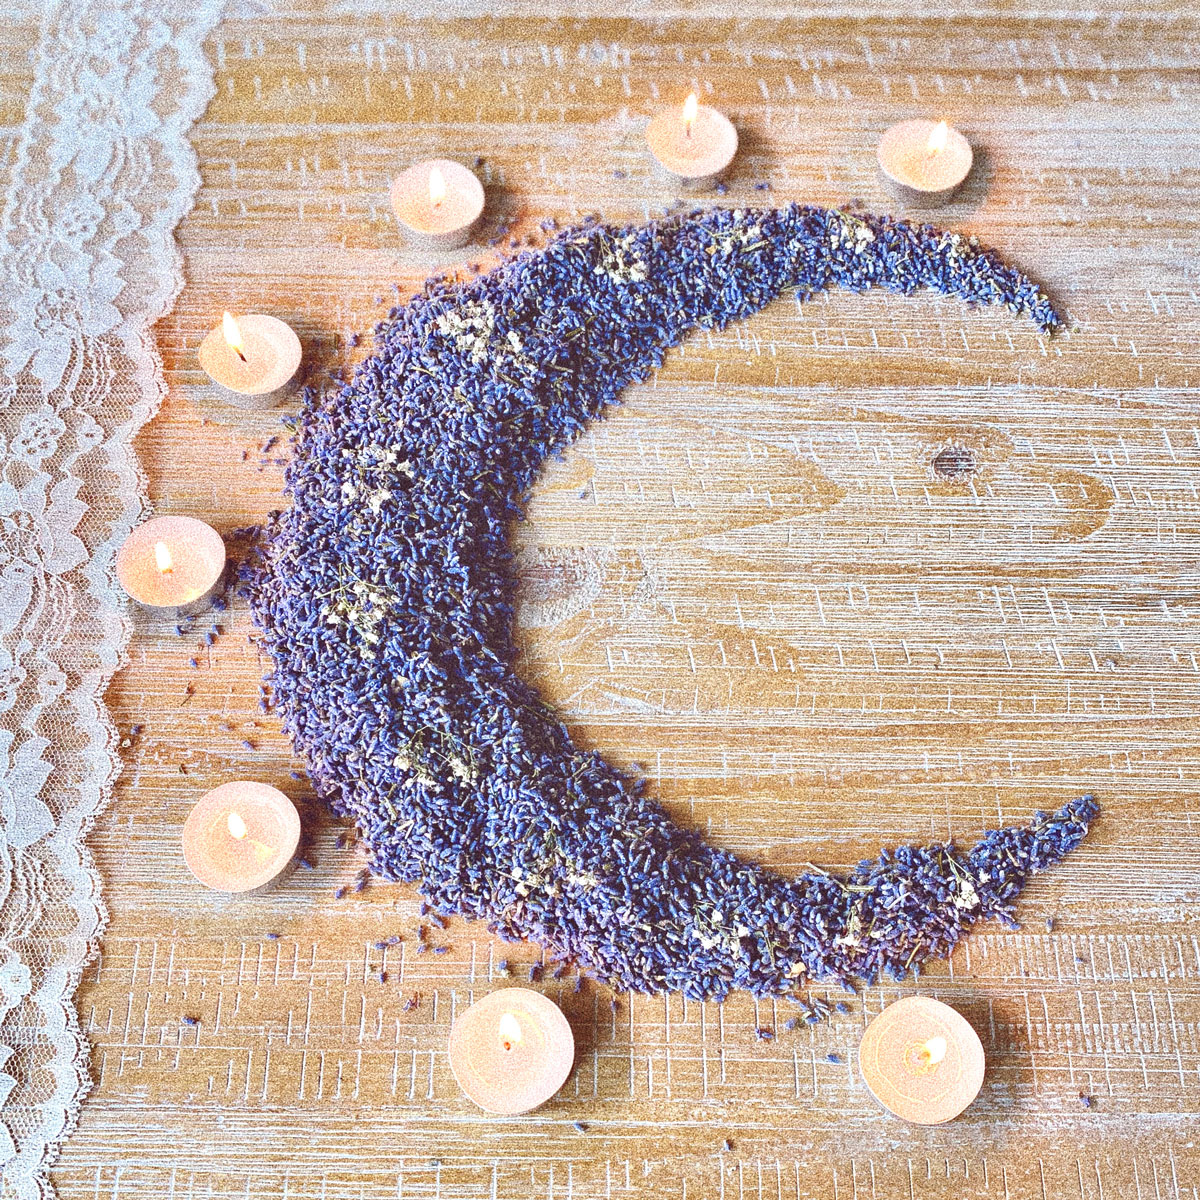 Heather Skasick Pantry Potions Lavender Moon